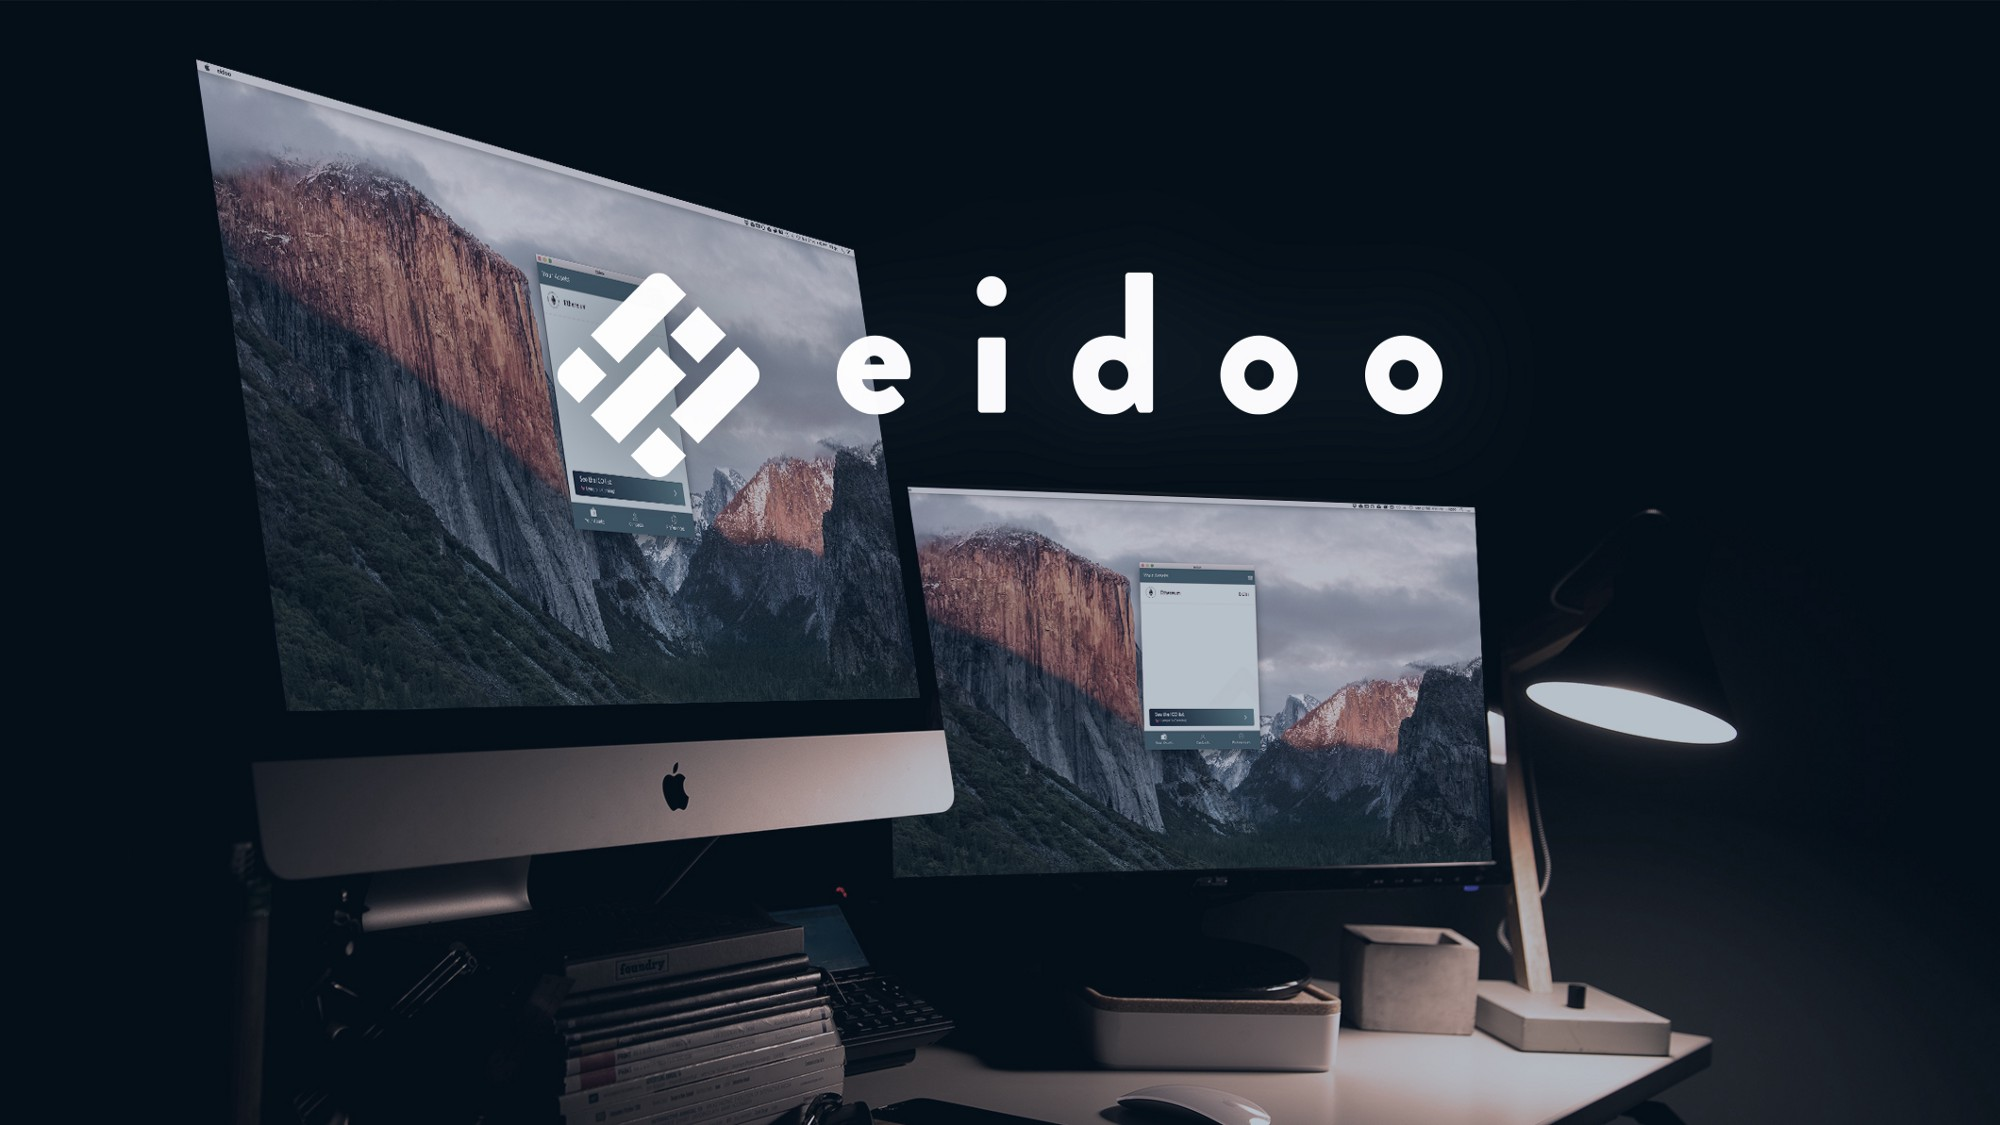 eidoo windows app